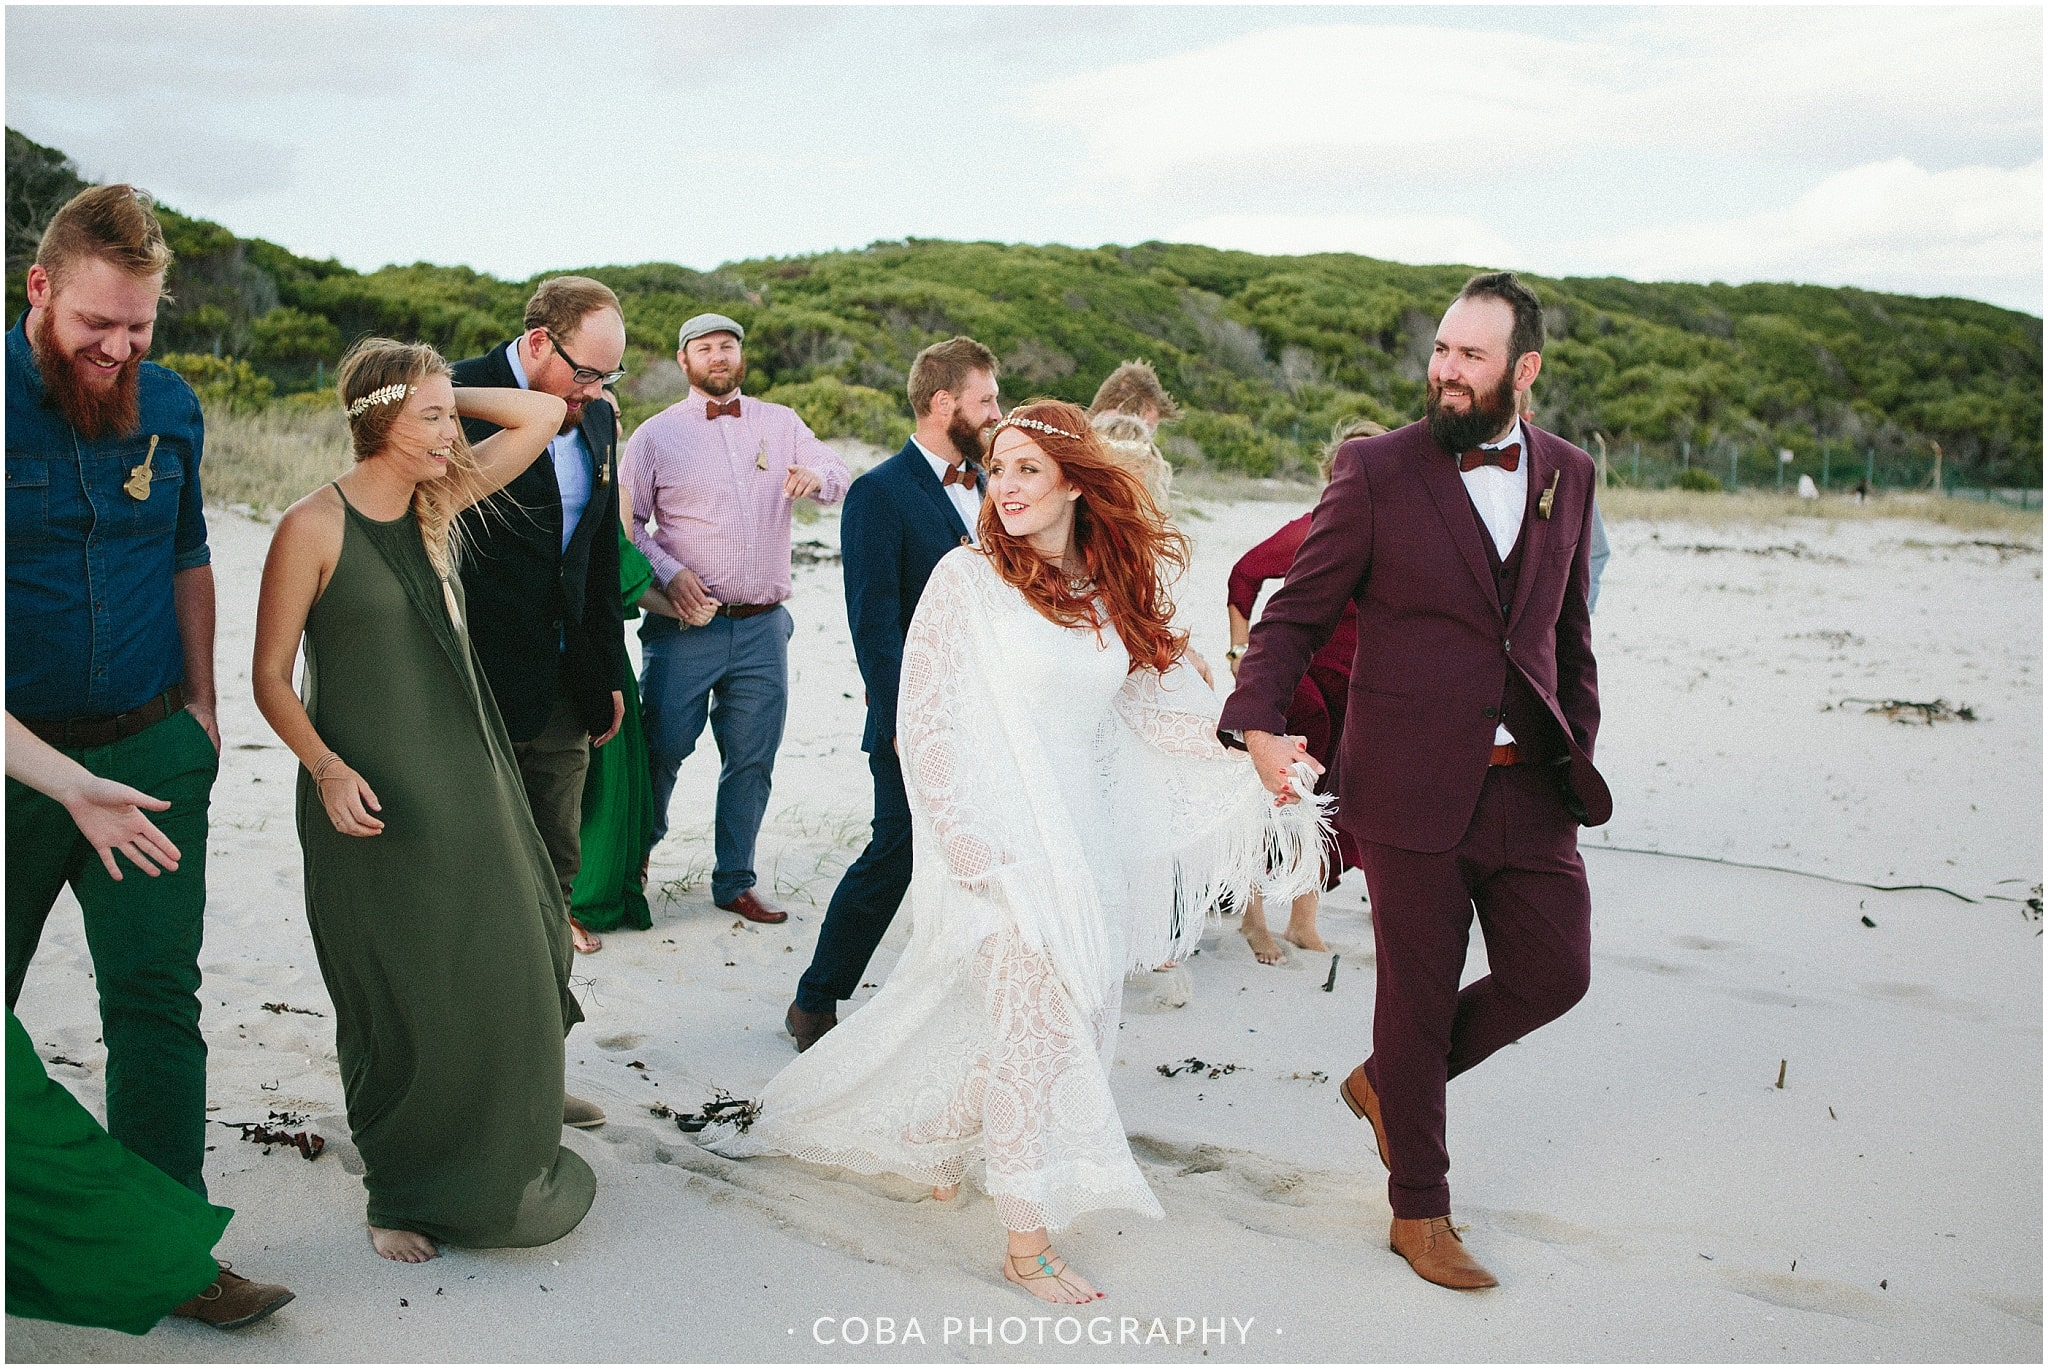 Conrad & Mareli - Bohemian beach wedding - (3)